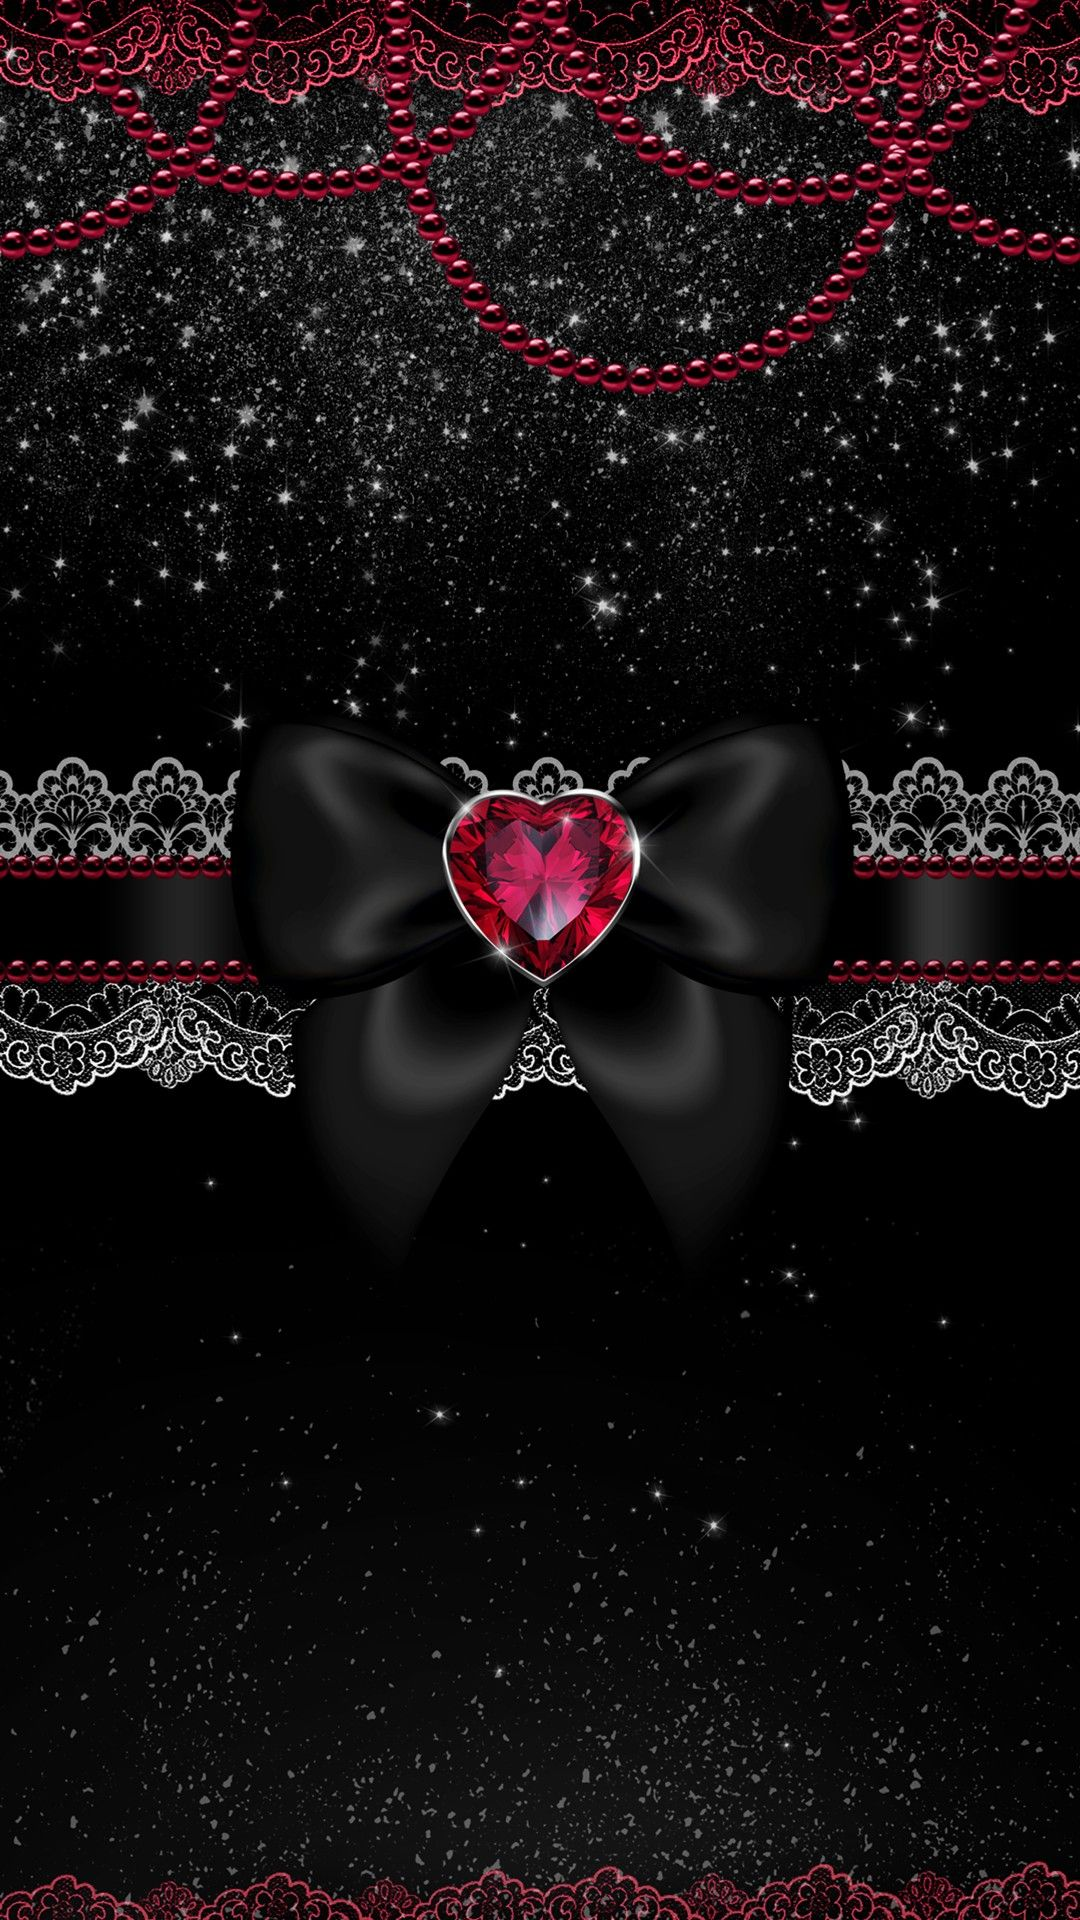 Valentines wallpaper image by Tania Yankova on Iphone